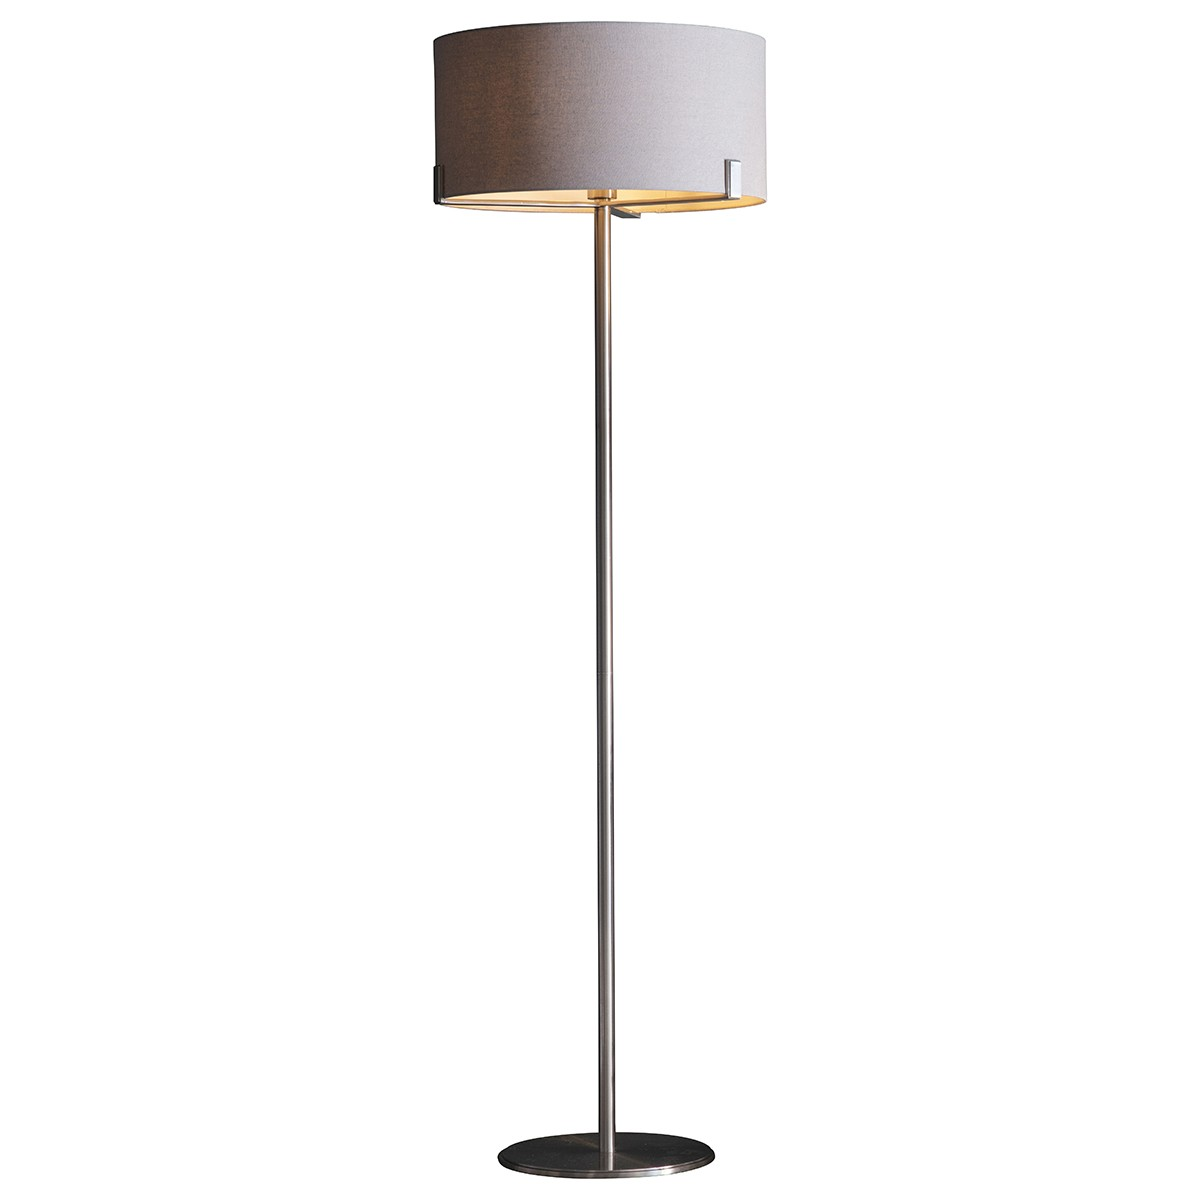 Eimear Steel Base Floor Lamp